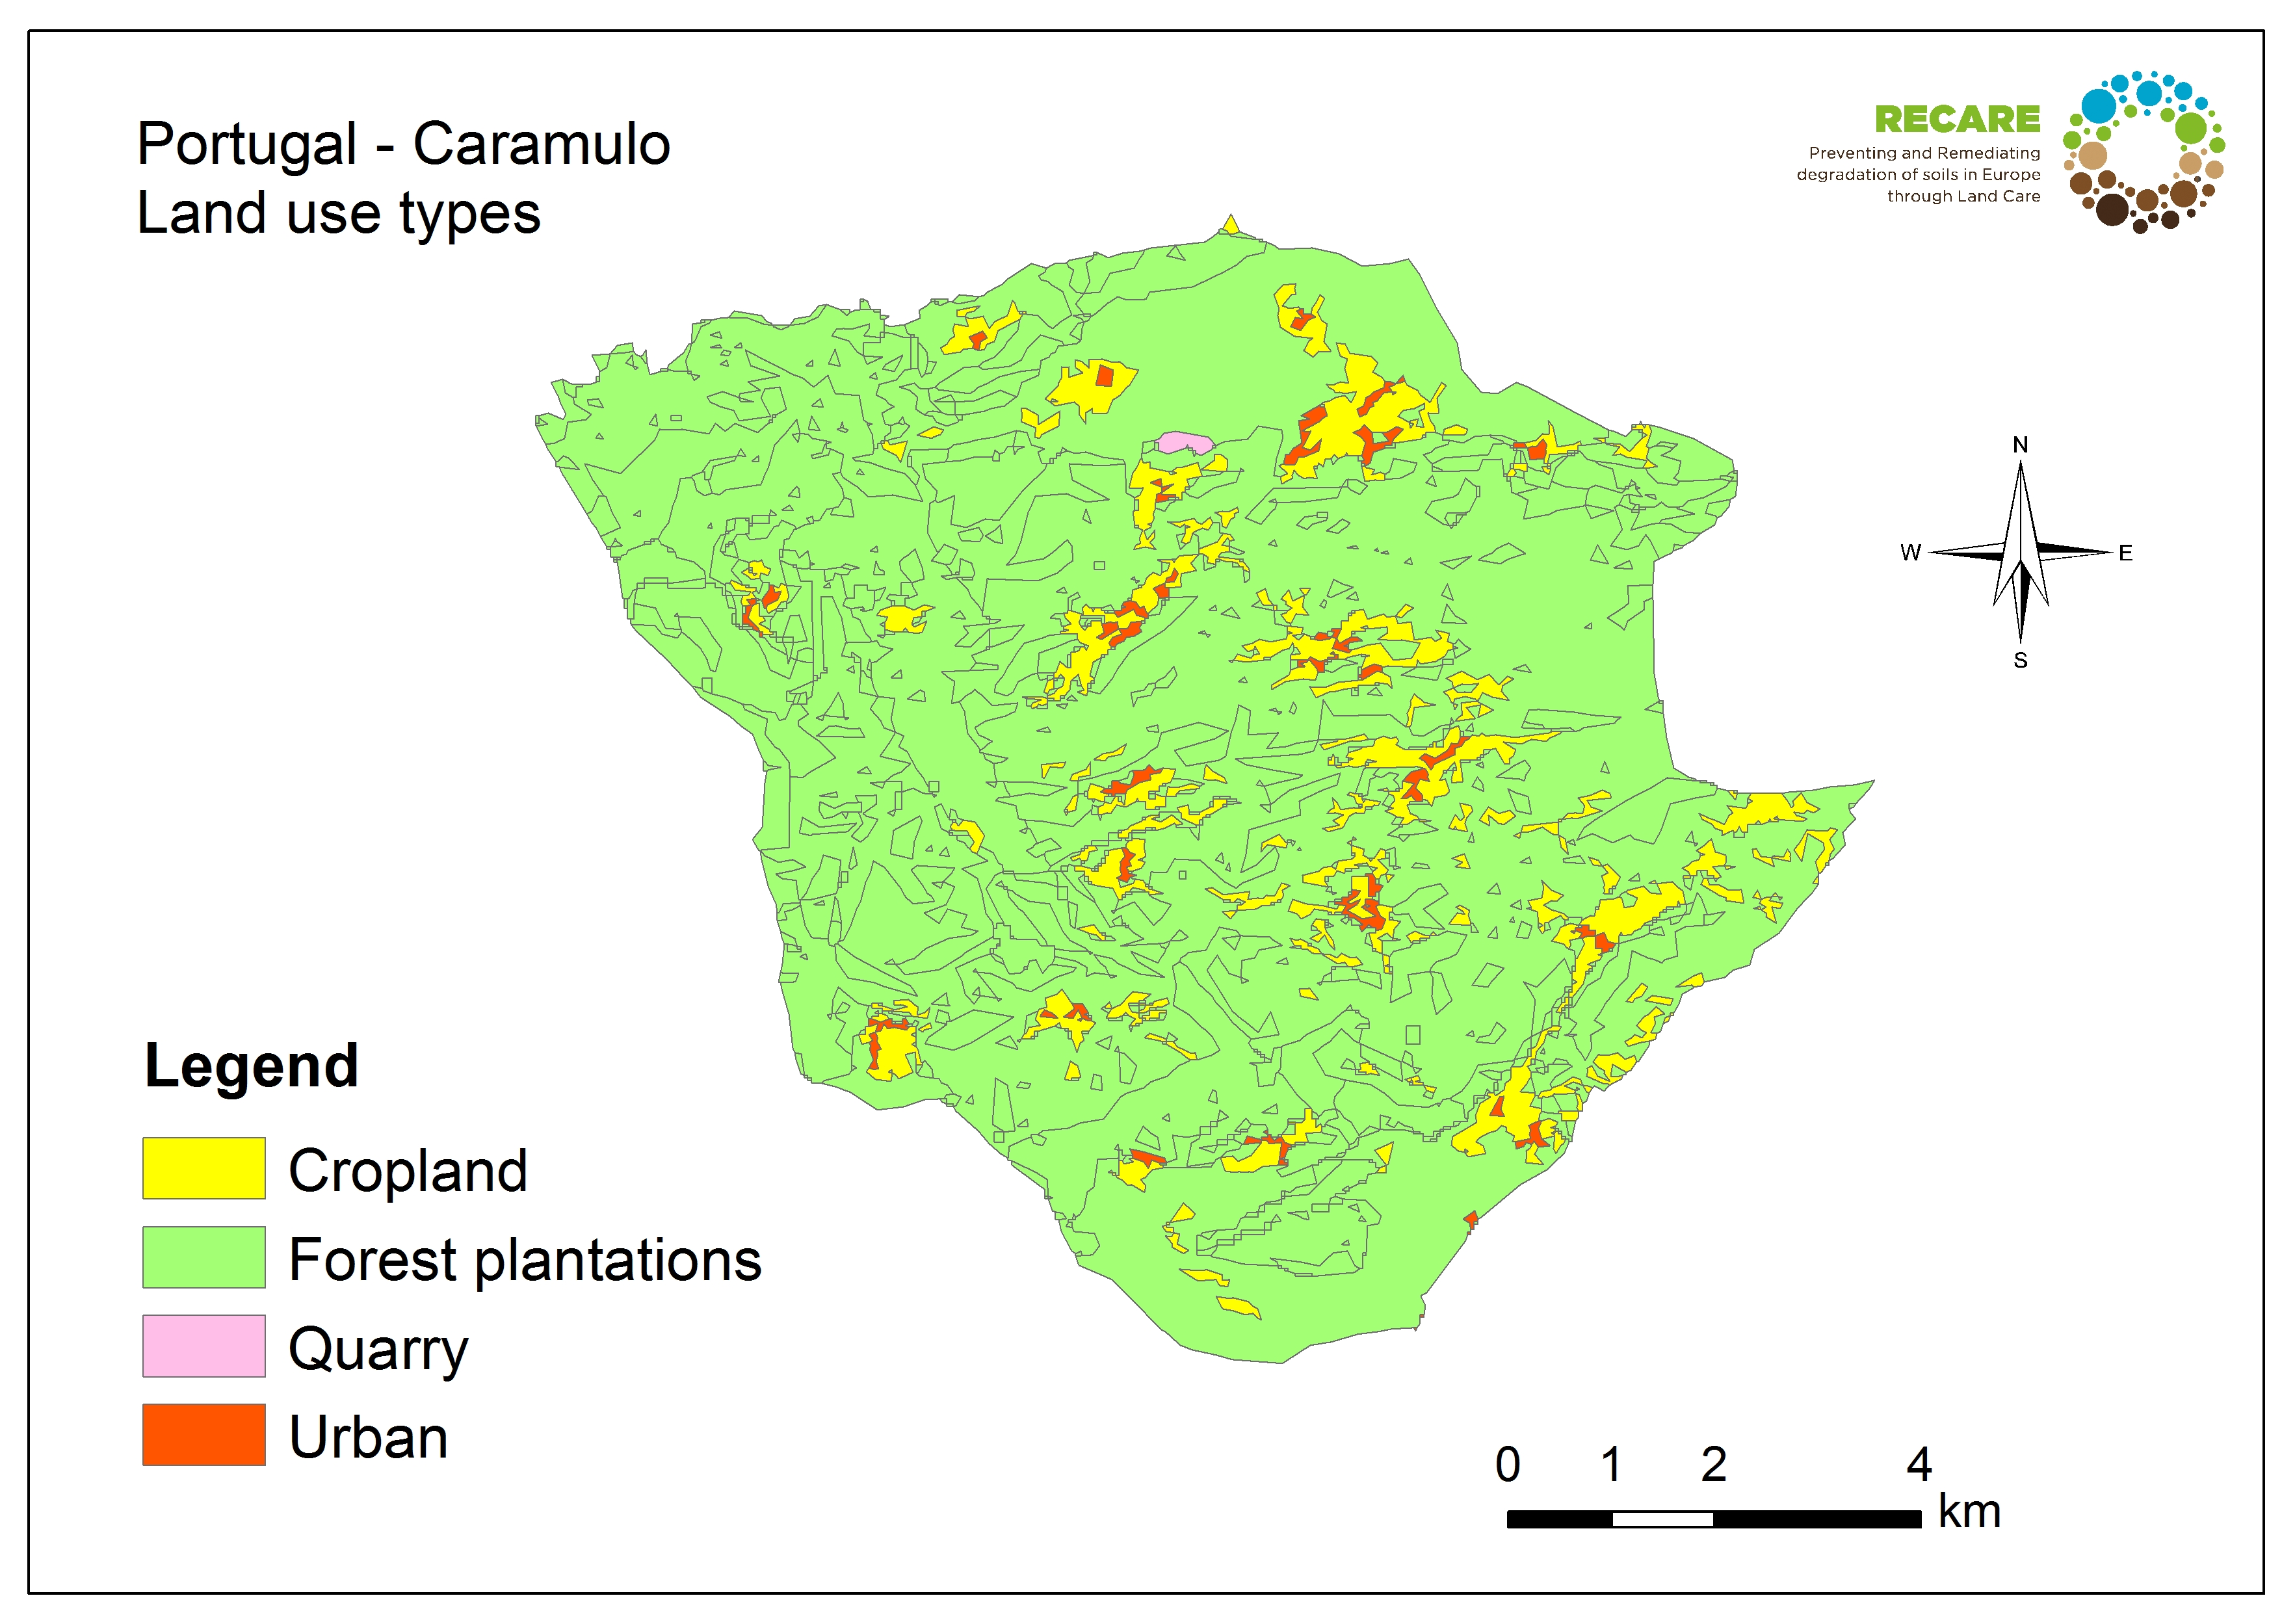 Portugal Caramulo land use types